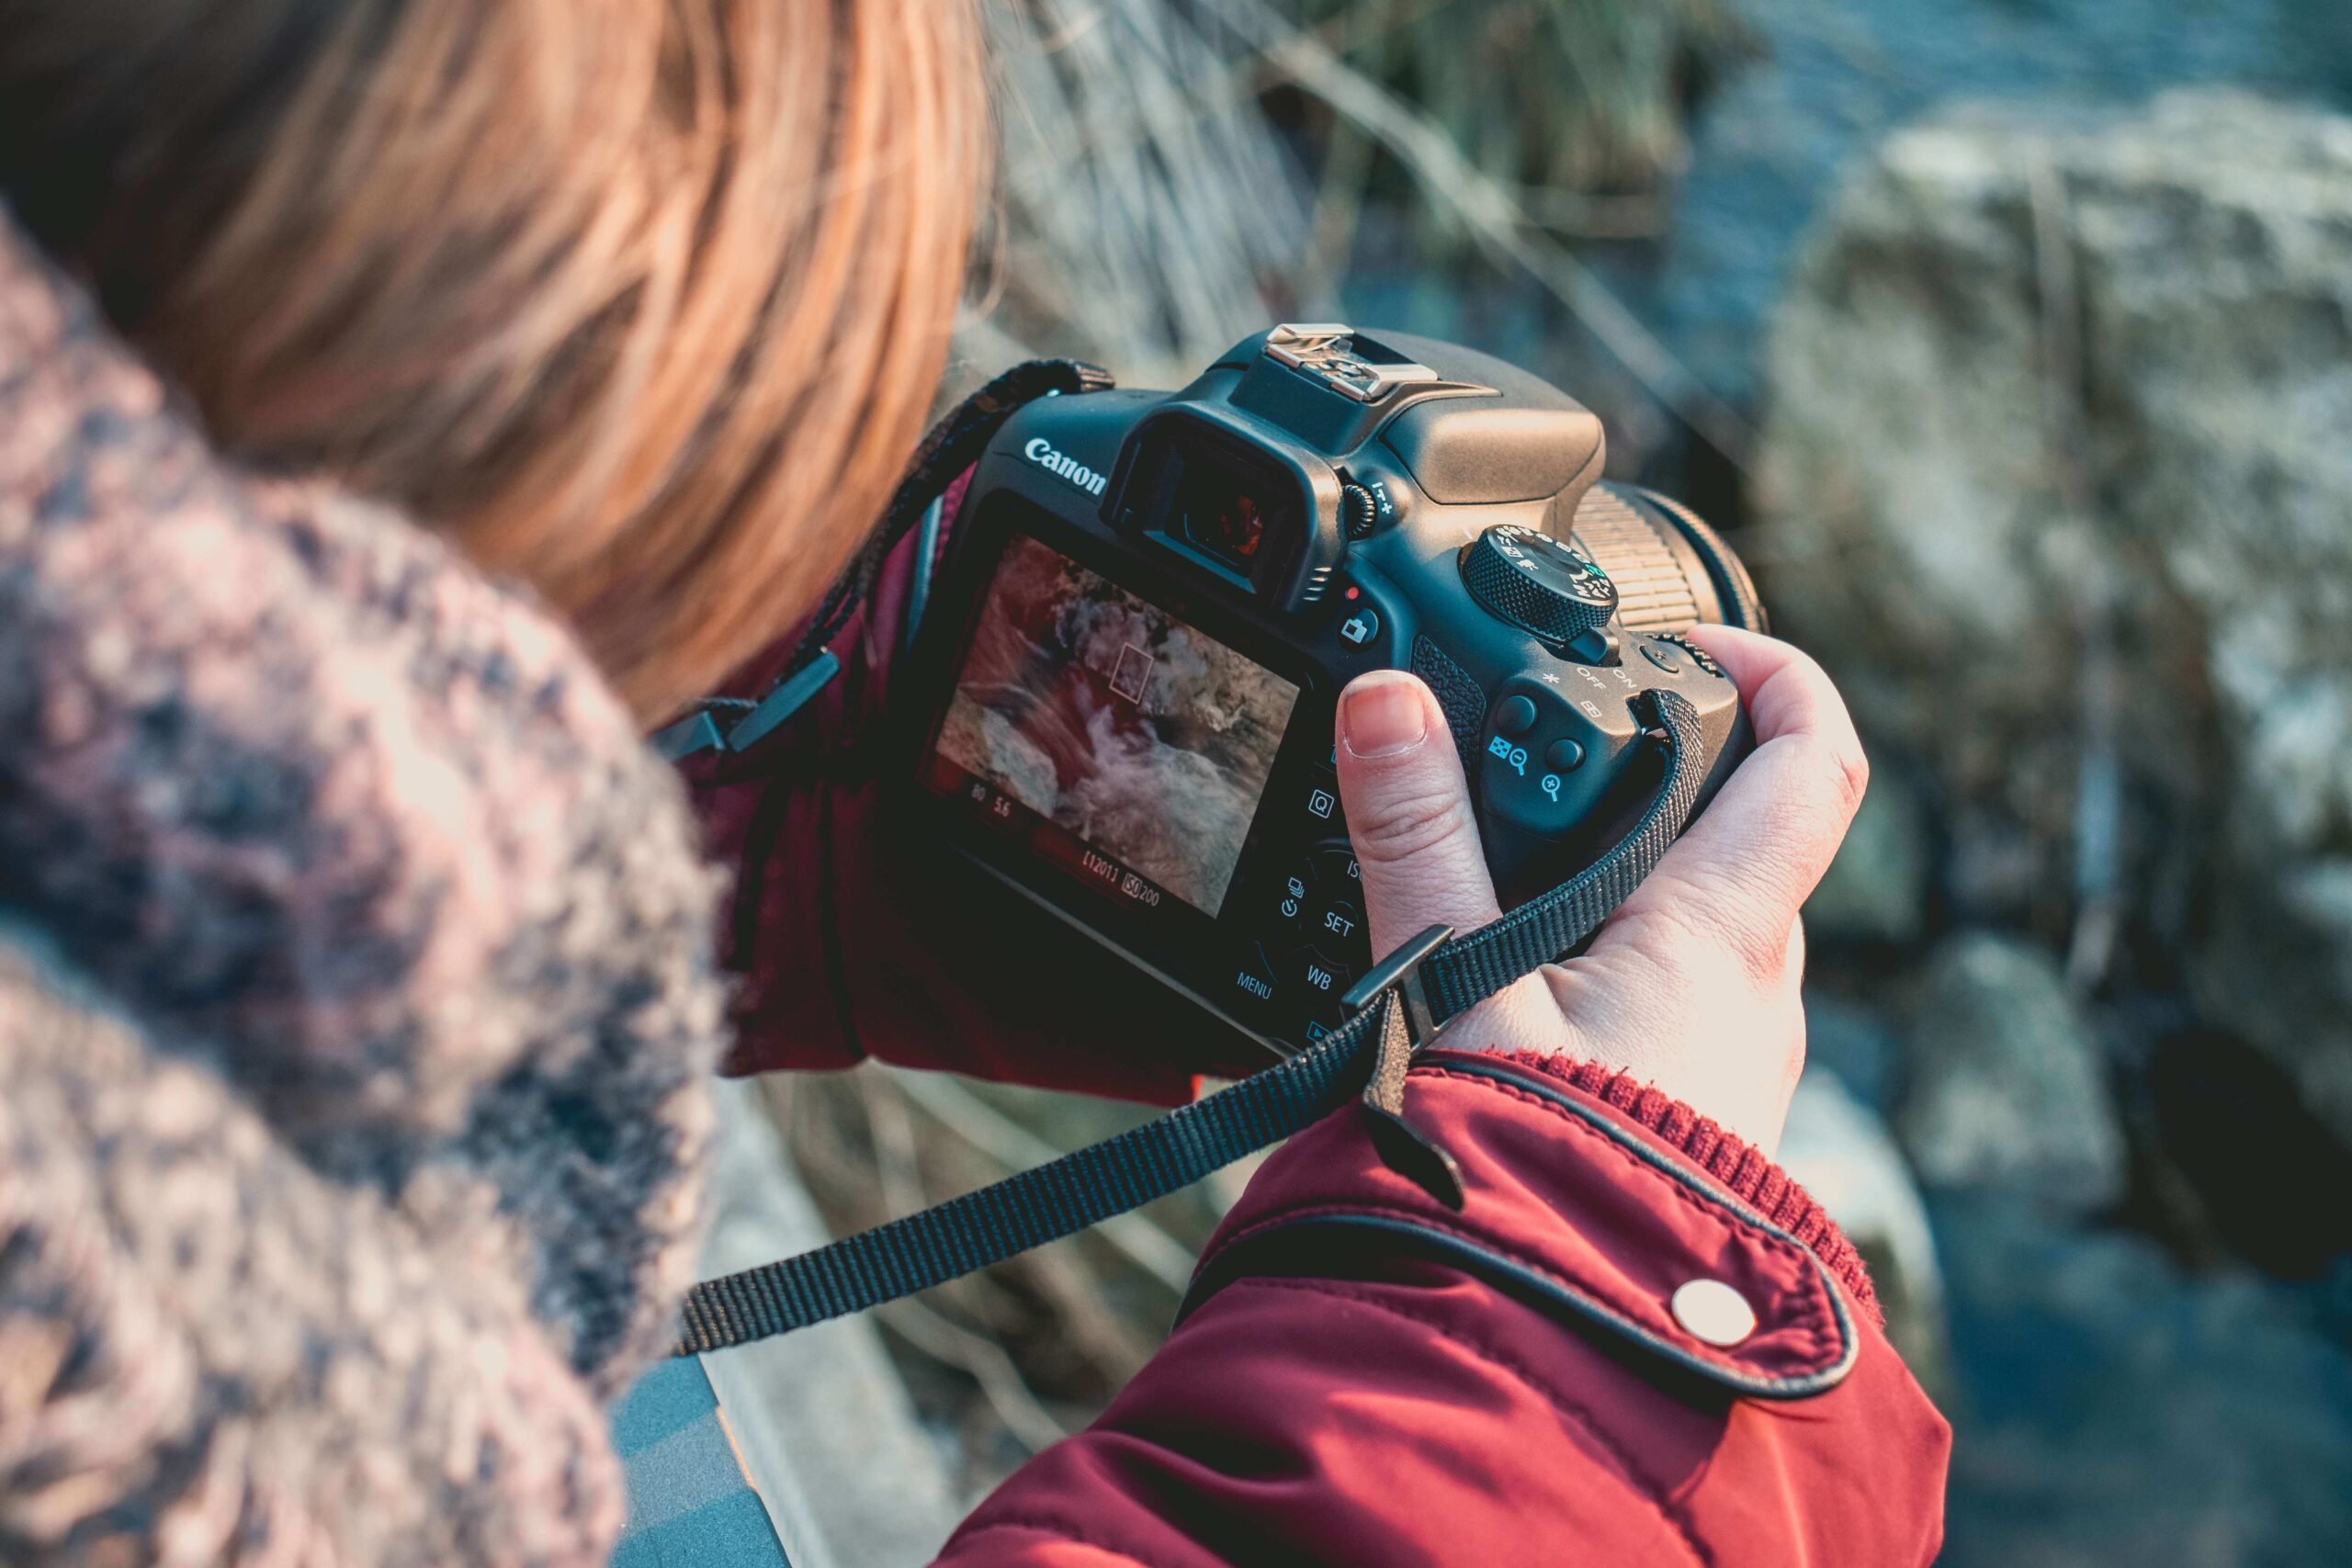 Learn the difference between workshops and tours; what to expect, and how to find a photography workshop or tour that's right for you.